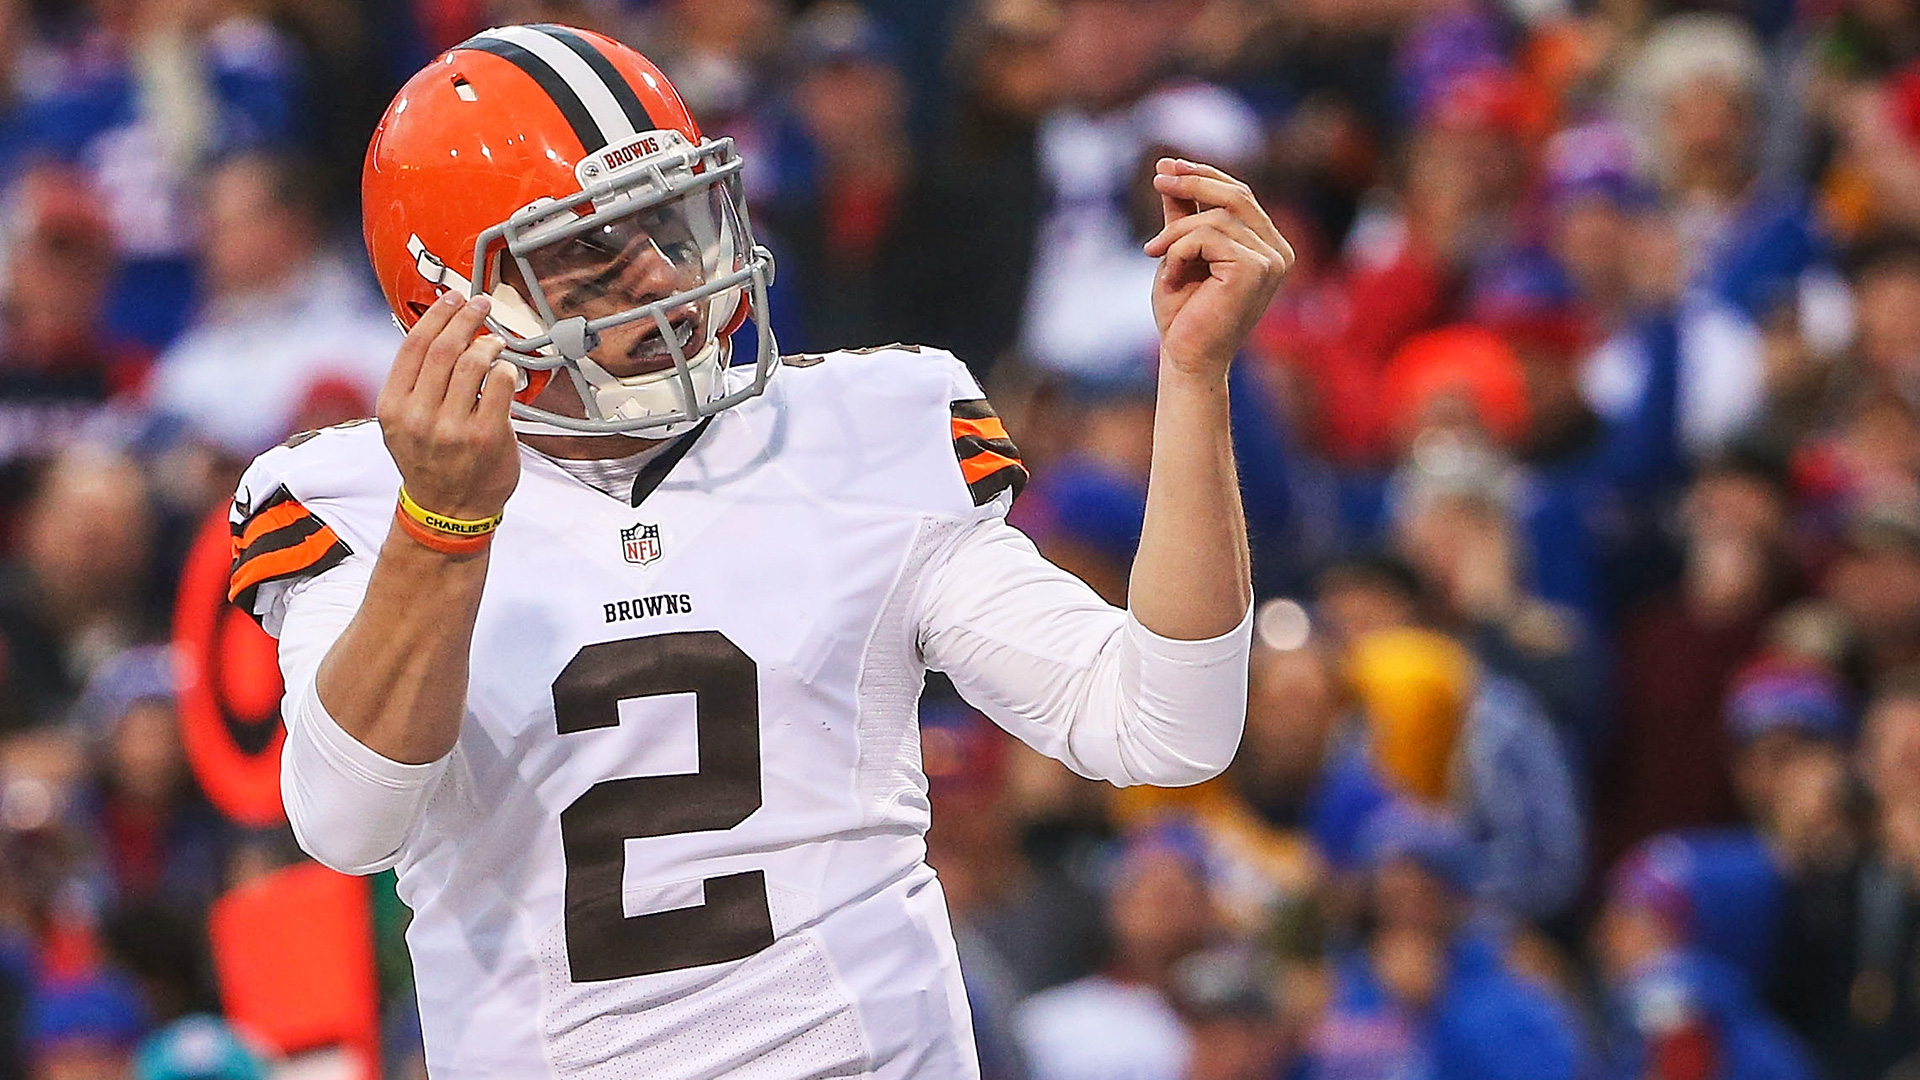 NCAA Cost Johnny Manziel At Least $8 Million, Report Says